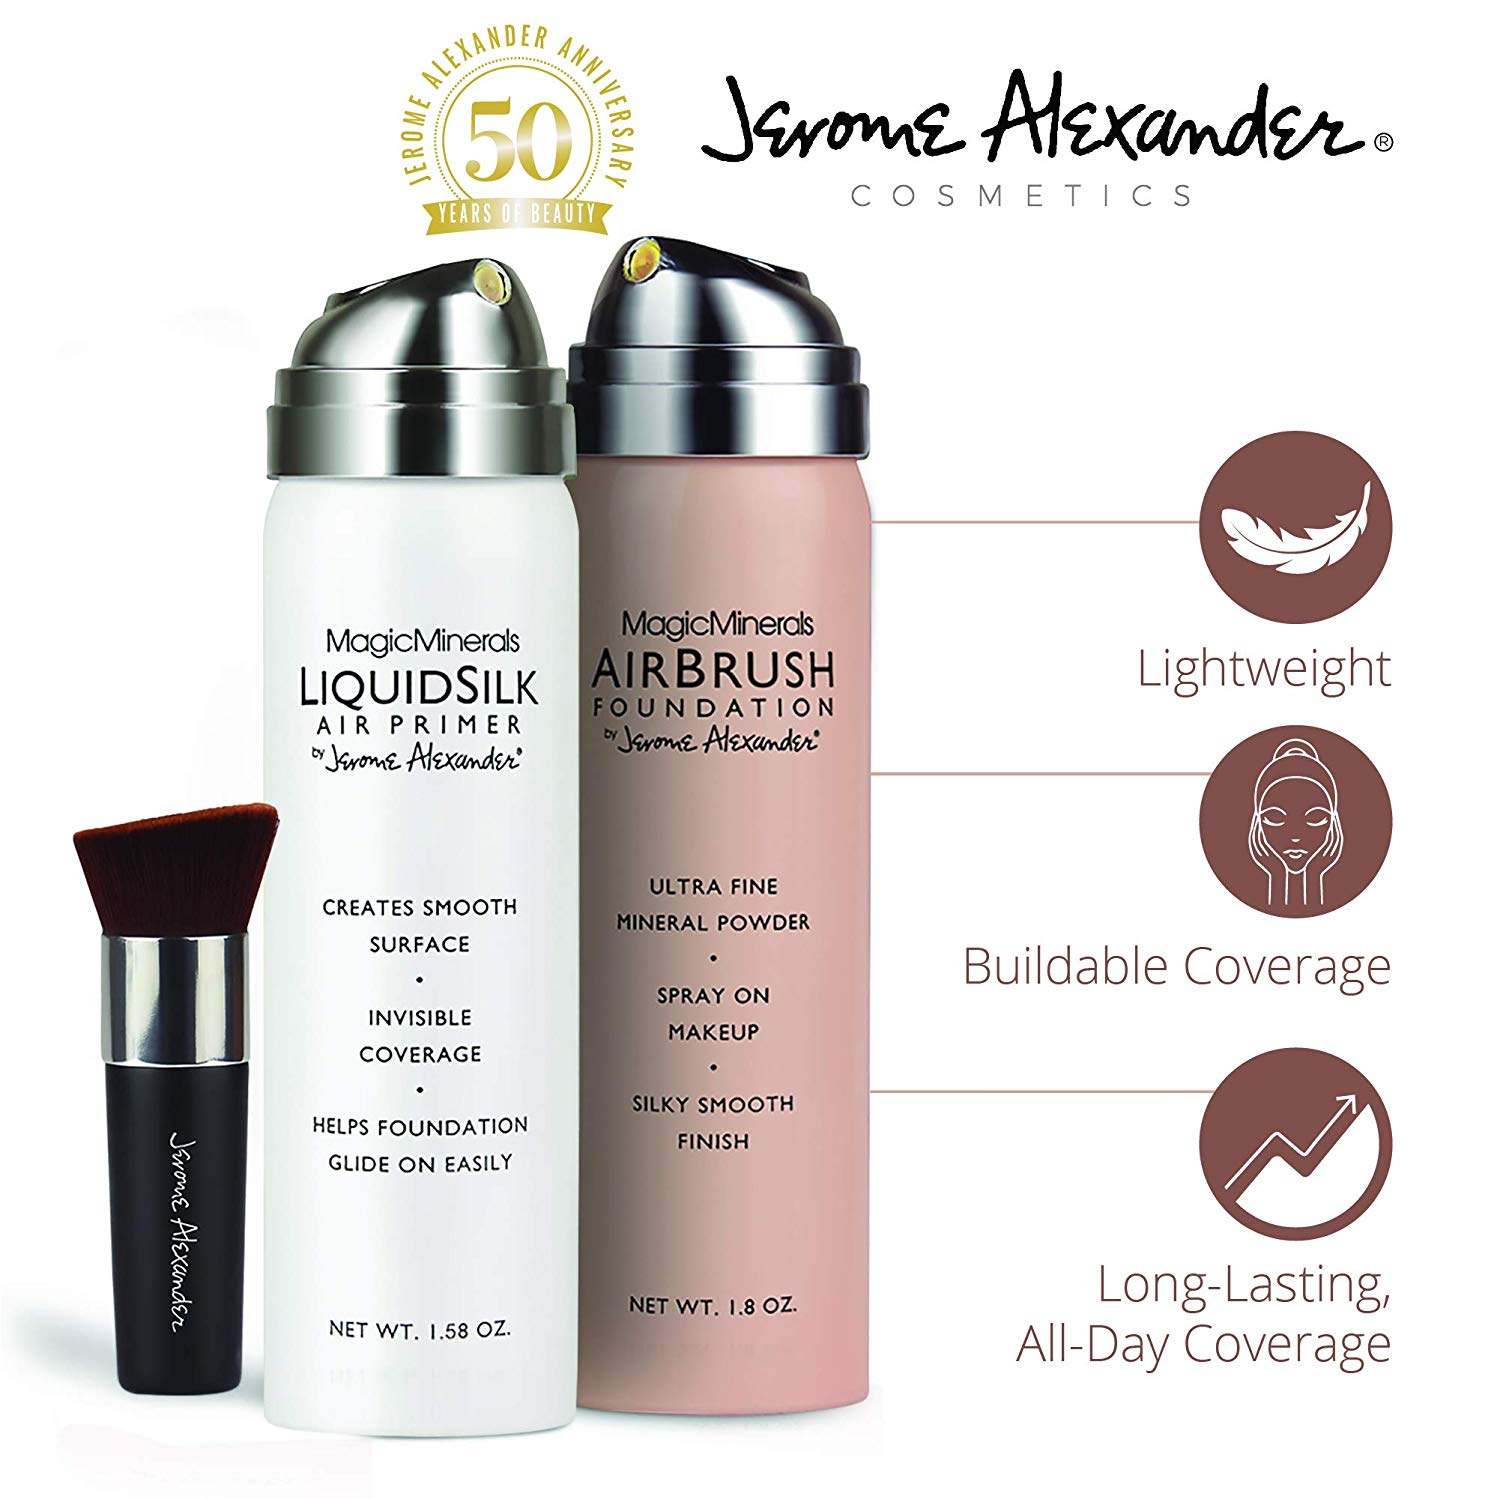 Review of Jerome Alexander Airbrush Foundation (3 Piece Set, Light)